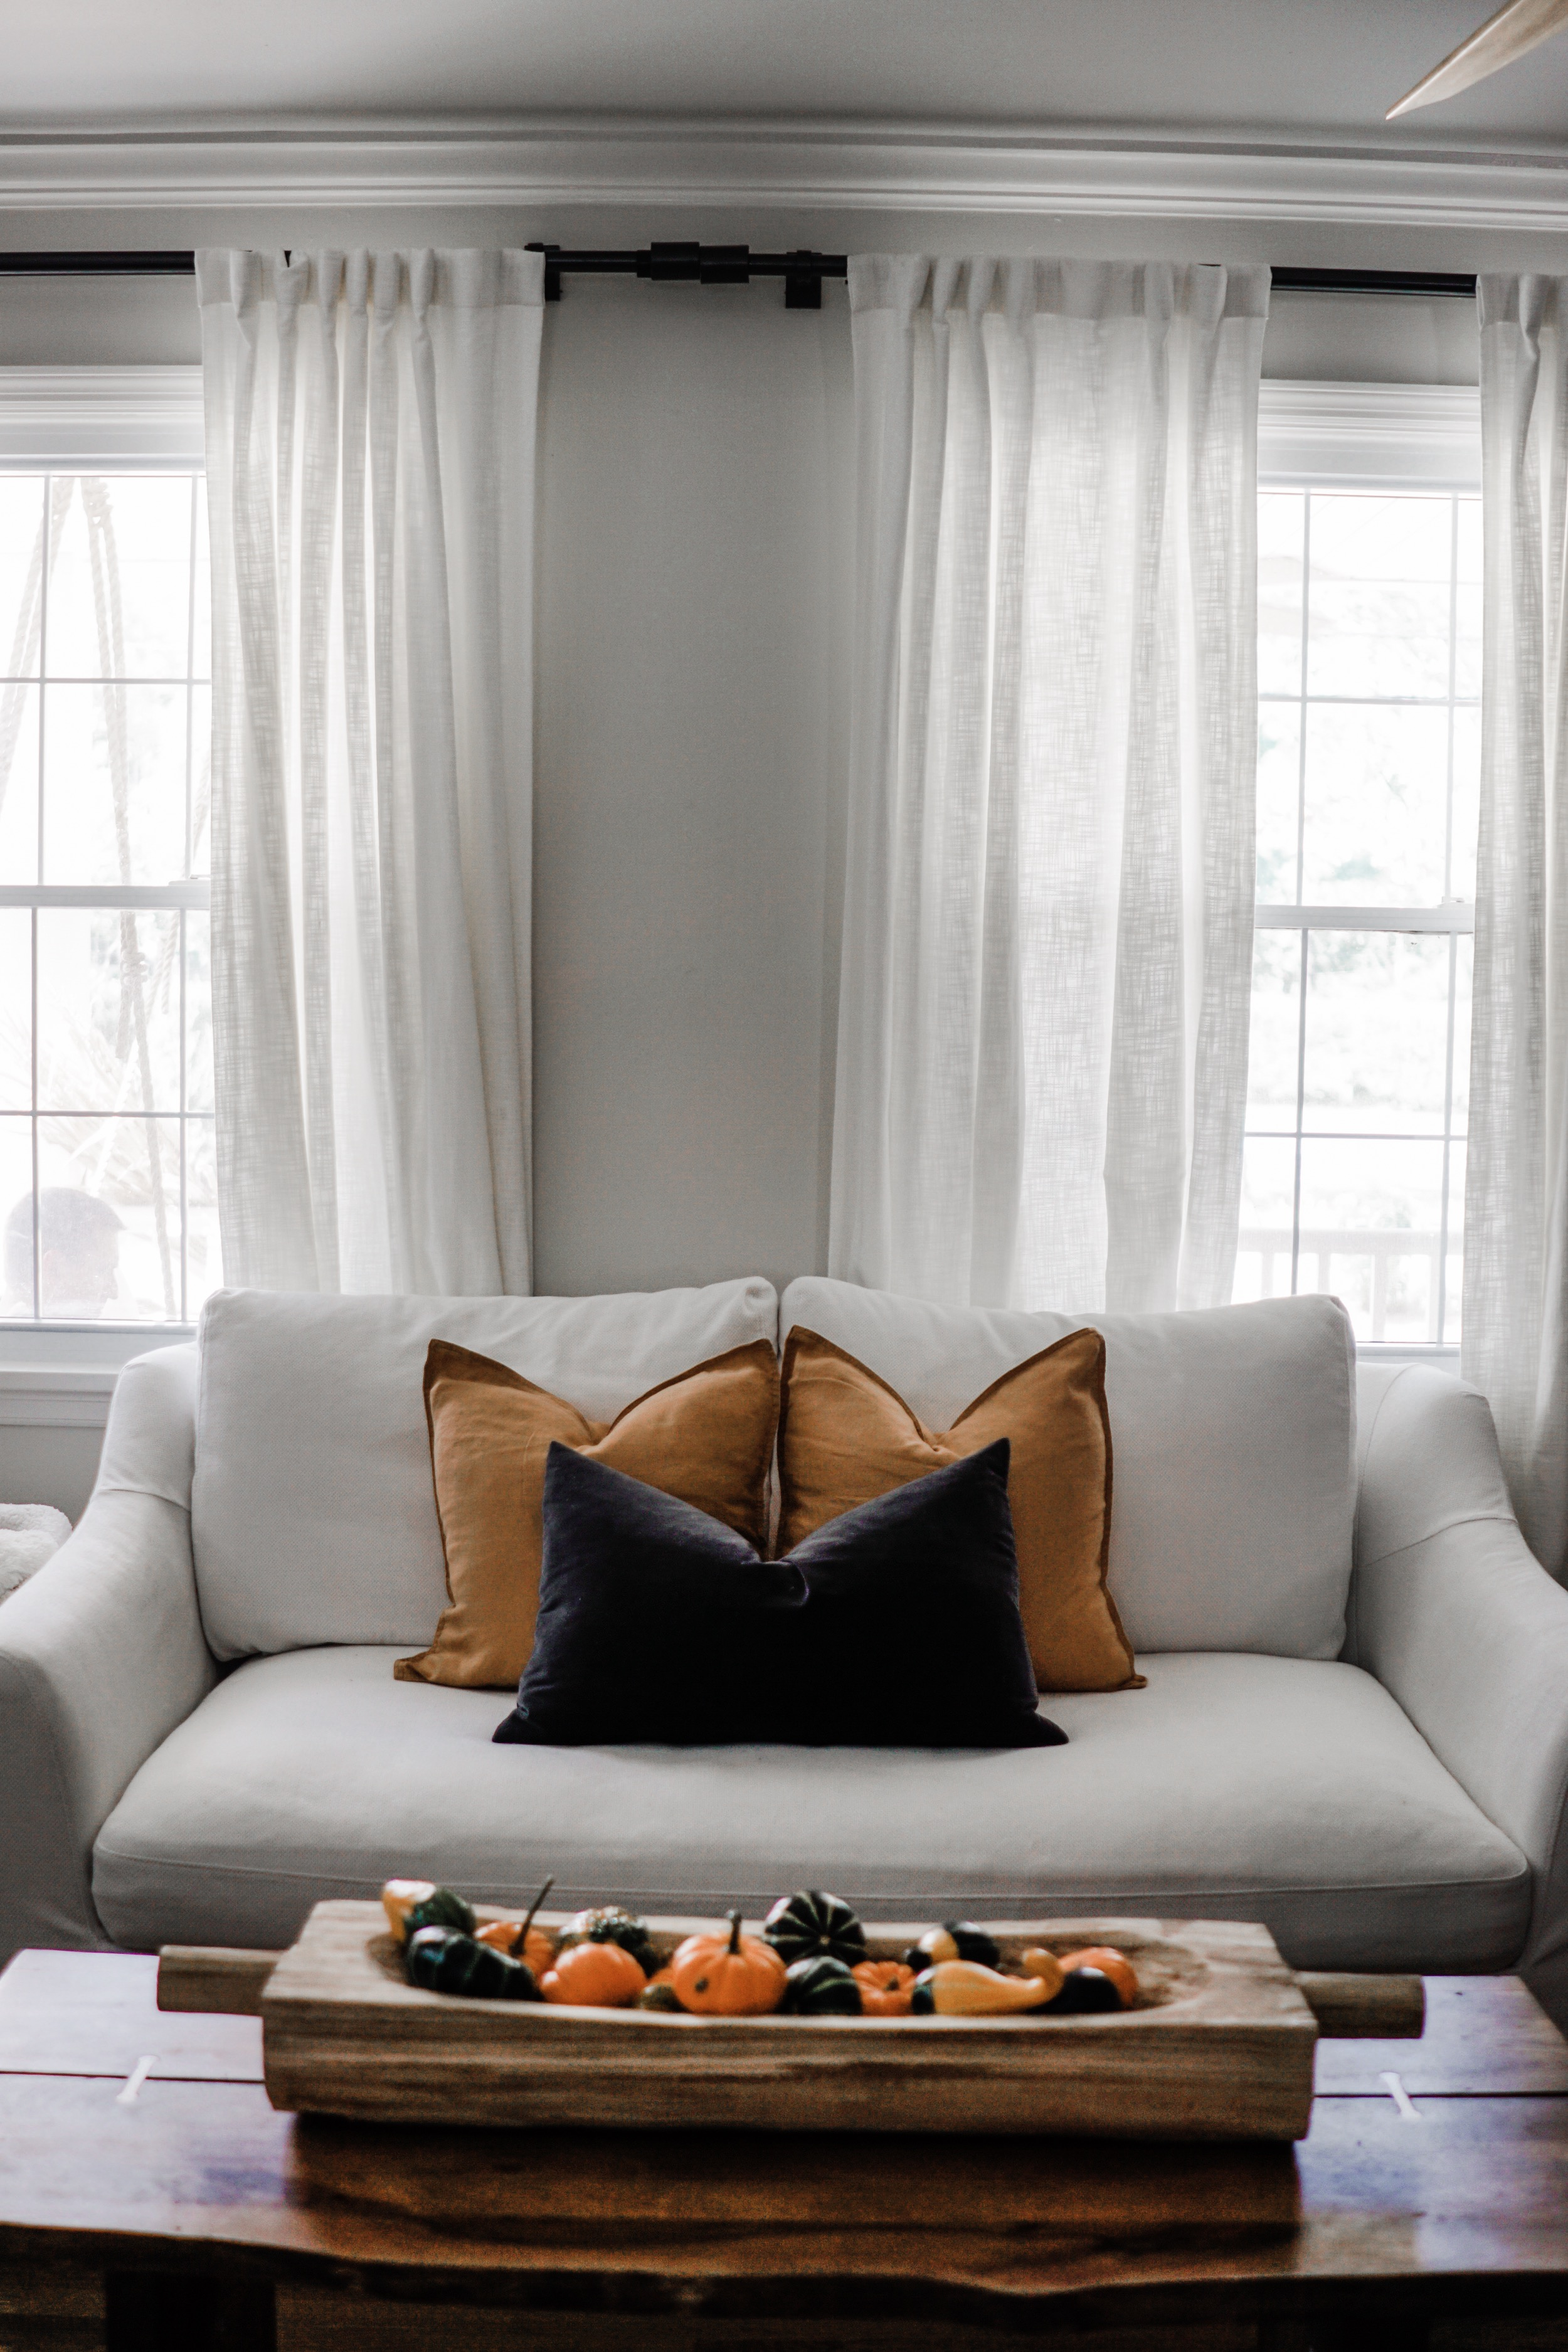 fall decor inspiration - living room with yellow and grey linen pillows.  Pumpkins and gourds for a fall centerpiece.  // fall living room decor idea